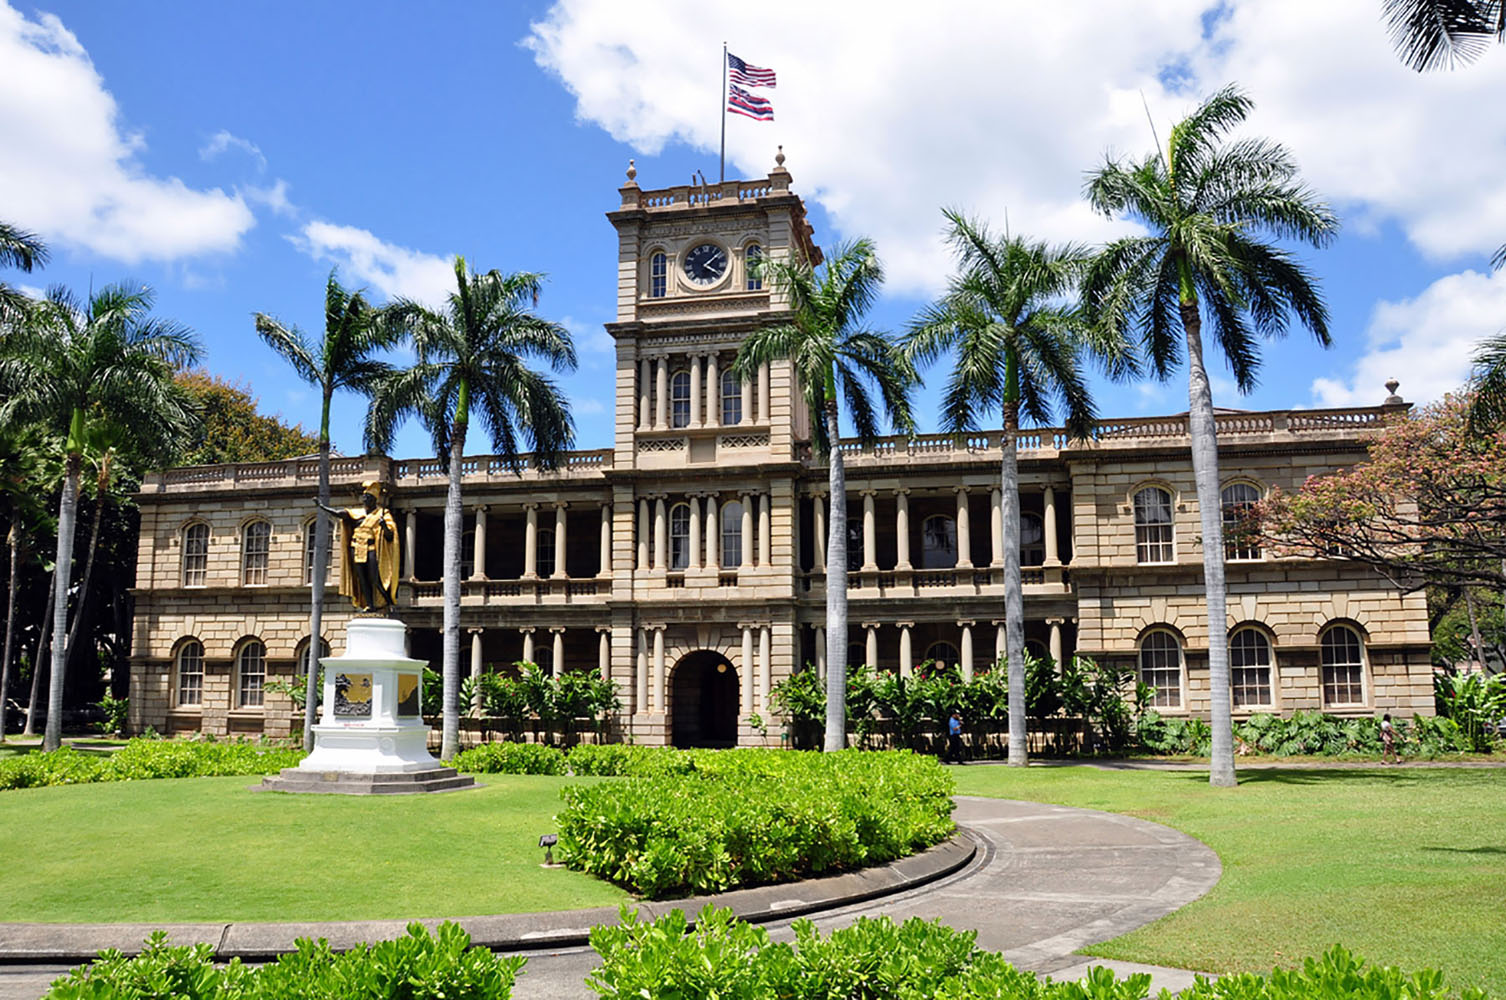 Iolani Palace in Honolulu on a sunny day